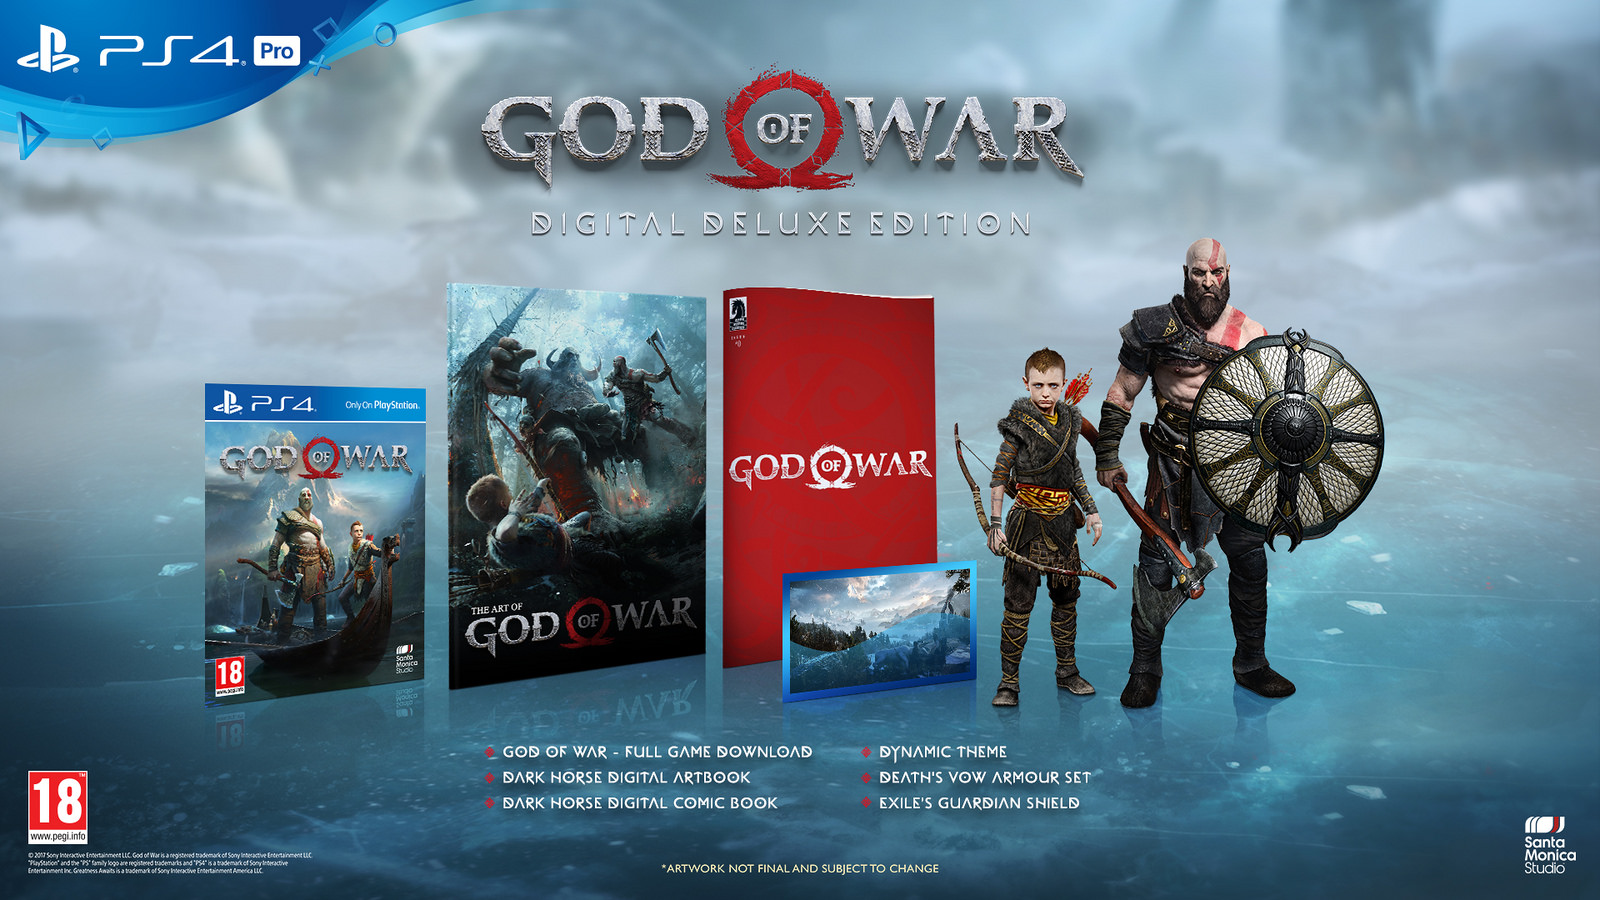 God of War 4 Releases on April 20th